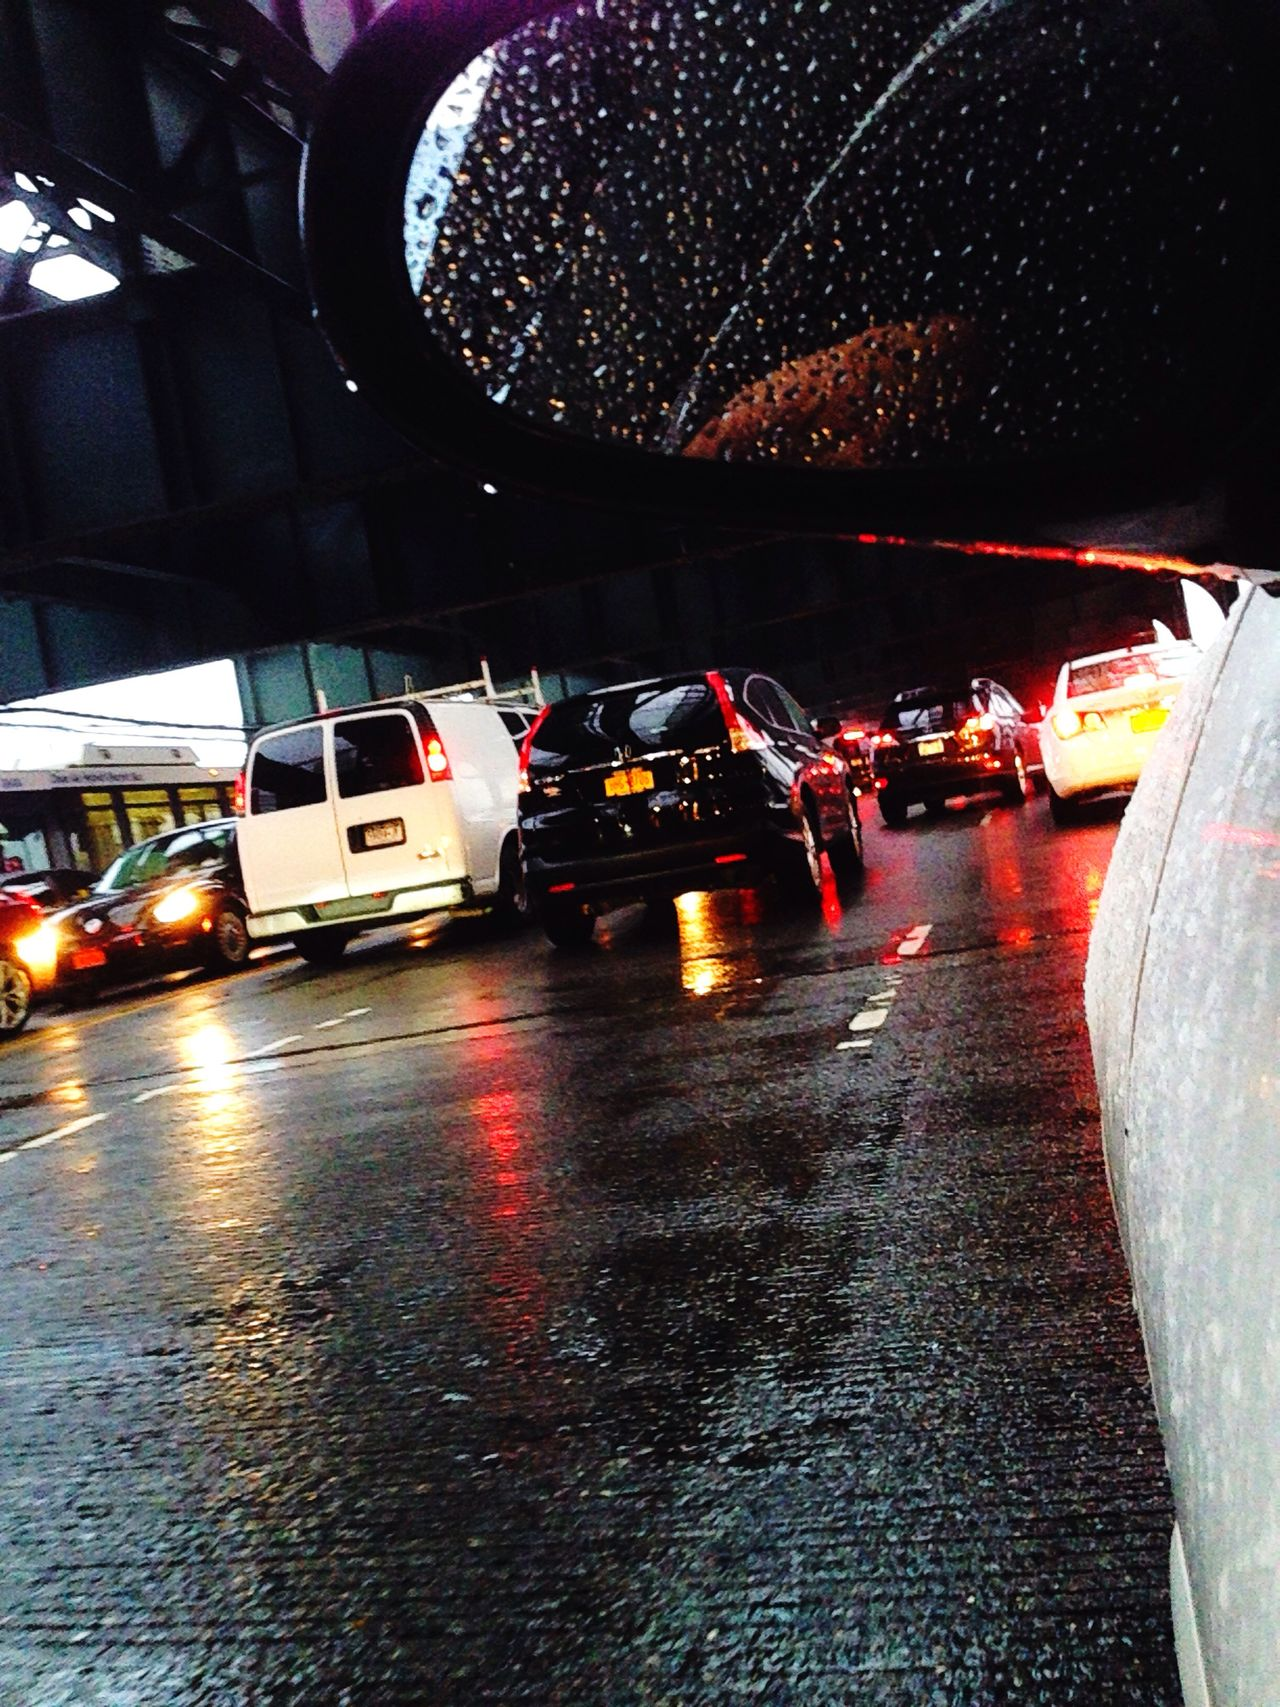 Driving in the rain across a bridge in heavy rush hour traffic, New York City on New York City streets. Car Transportation Mode Of Transport Traffic Road City Life Rush Hour